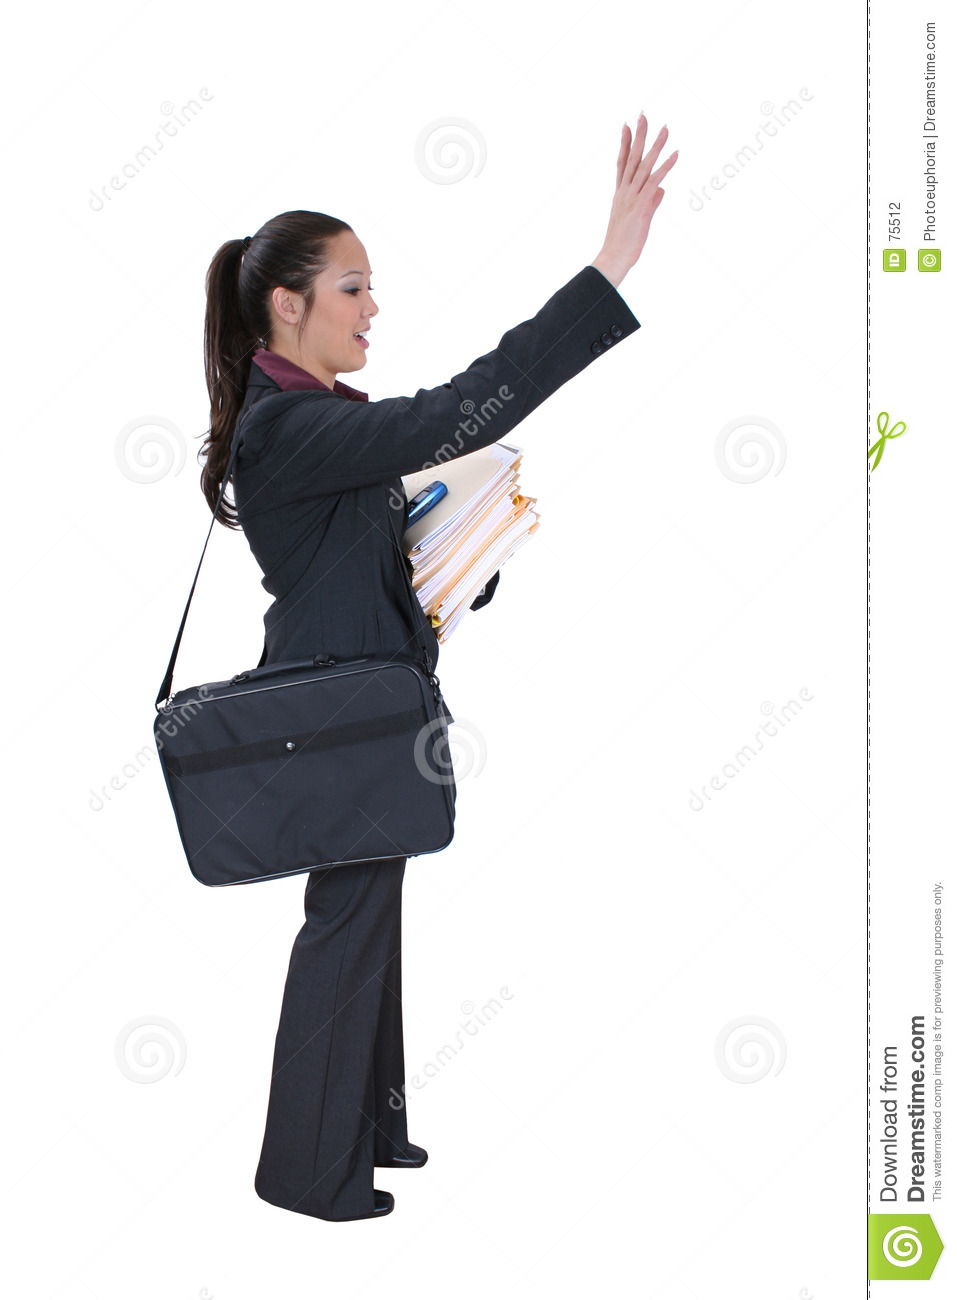 Buisiness Woman Hailing a Cab or Friend